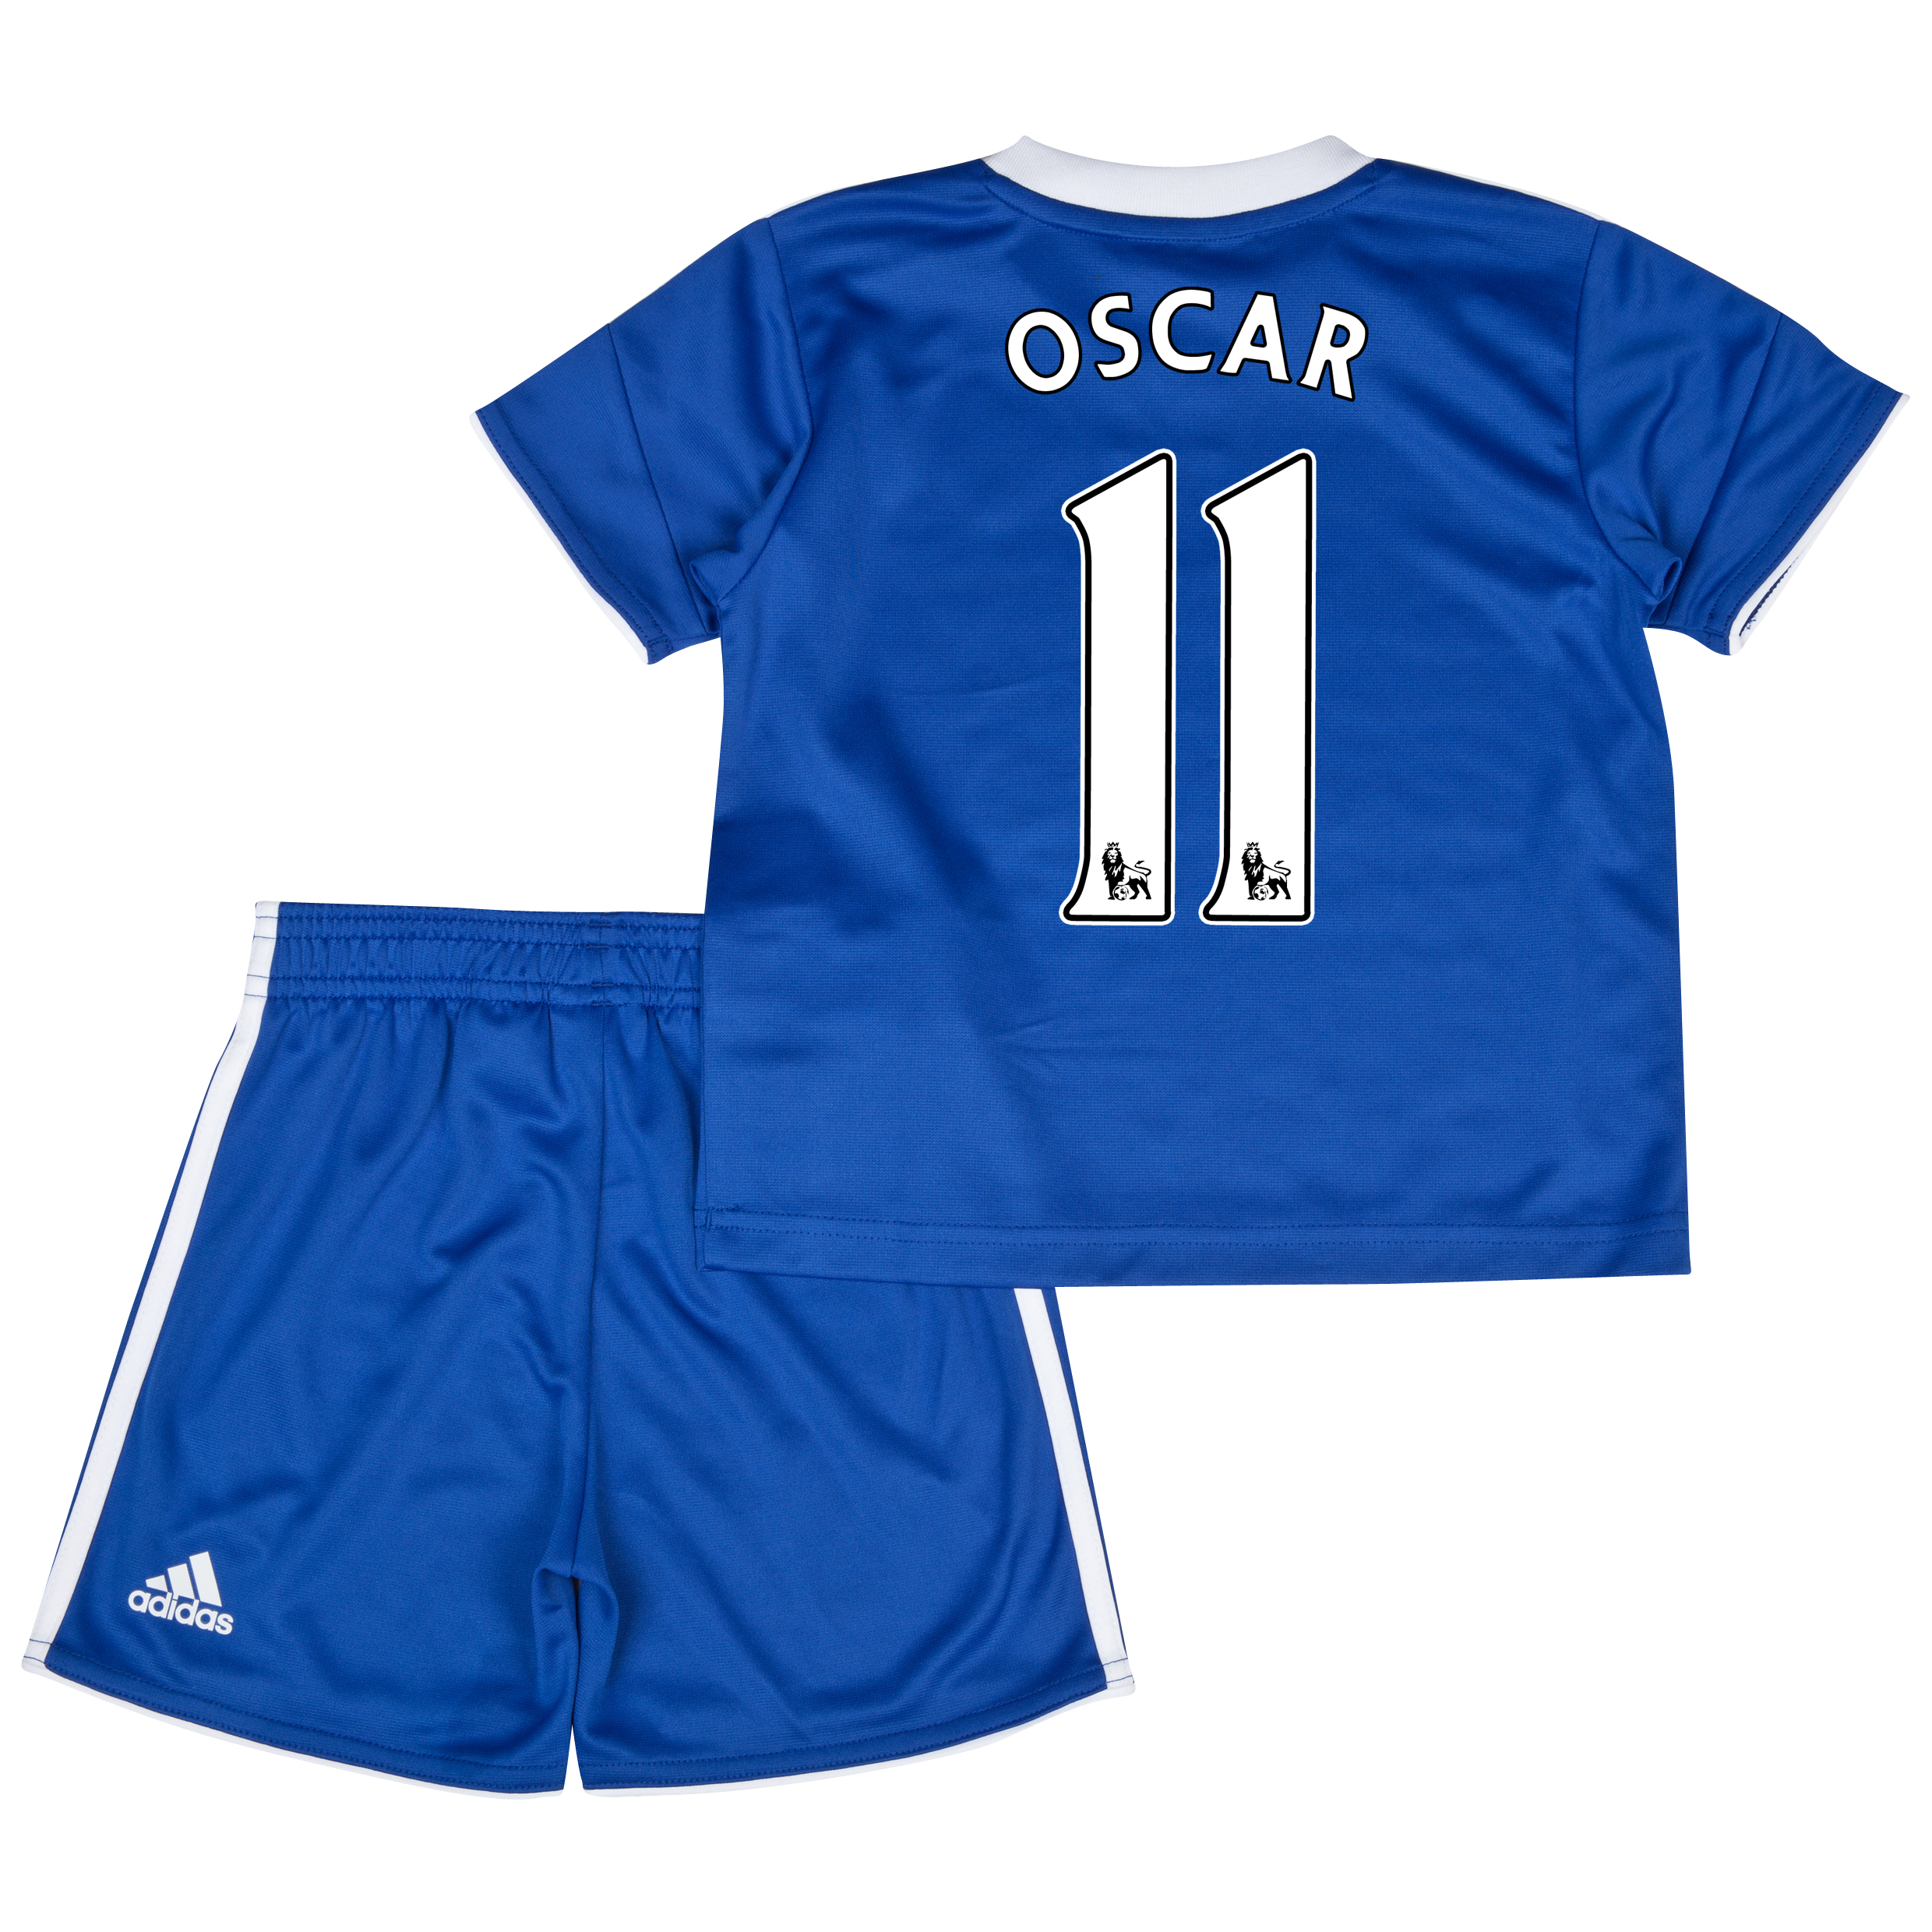 Chelsea Home Mini Kit 2013/14 with Oscar 11 printing